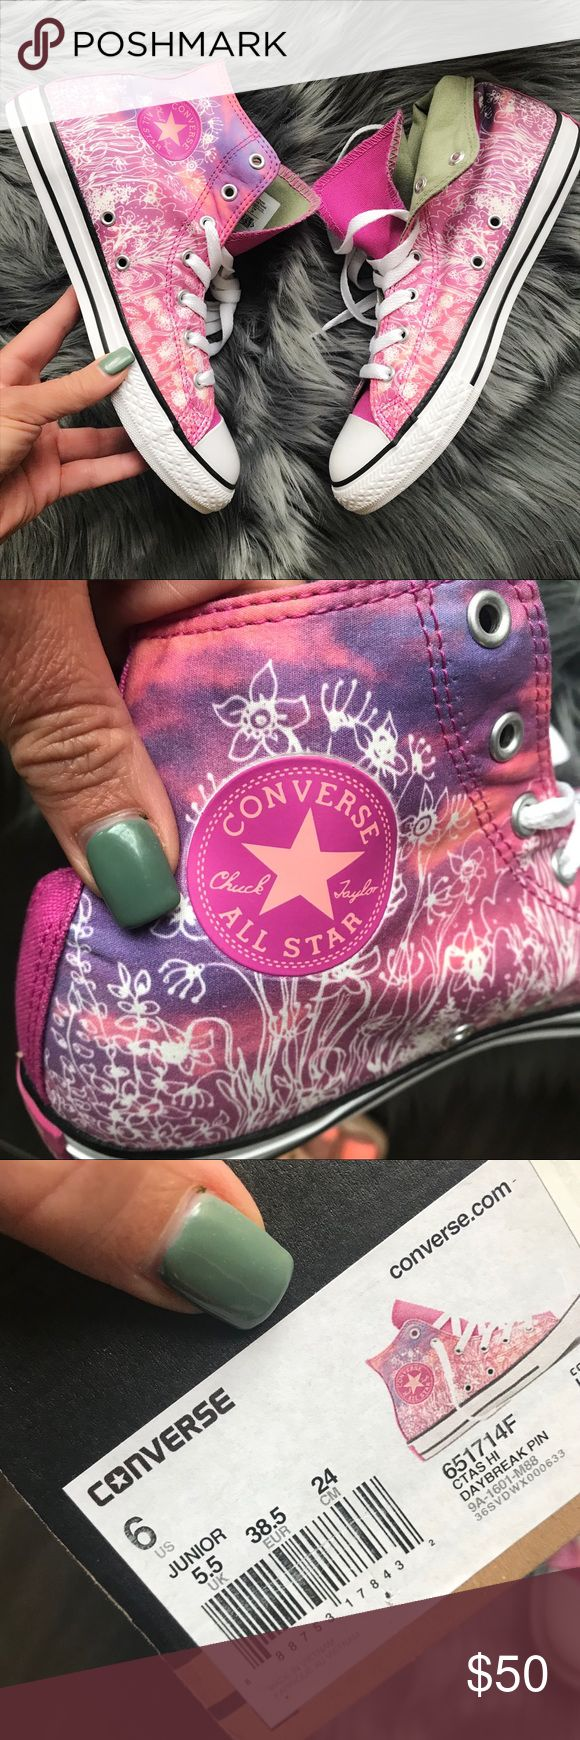 NEW 🌷 Converse floral ALLSTAR fits SIZE WOMENS 8 NEW! Never worn, floral print in gorgeous shoes of pink and lilac 🌷 cargo green lining for a edgy appeal!   Size 6 kids (fits size 8 woman, 24cm)  Ships same or next day from my smoke free home. Original box, no lid.   PRICE is FIRM, offers will be considered through the offer button only. Bundle items to save. 🌷  100% authentic, purchased directly from CONVERSE Converse Shoes Sneakers